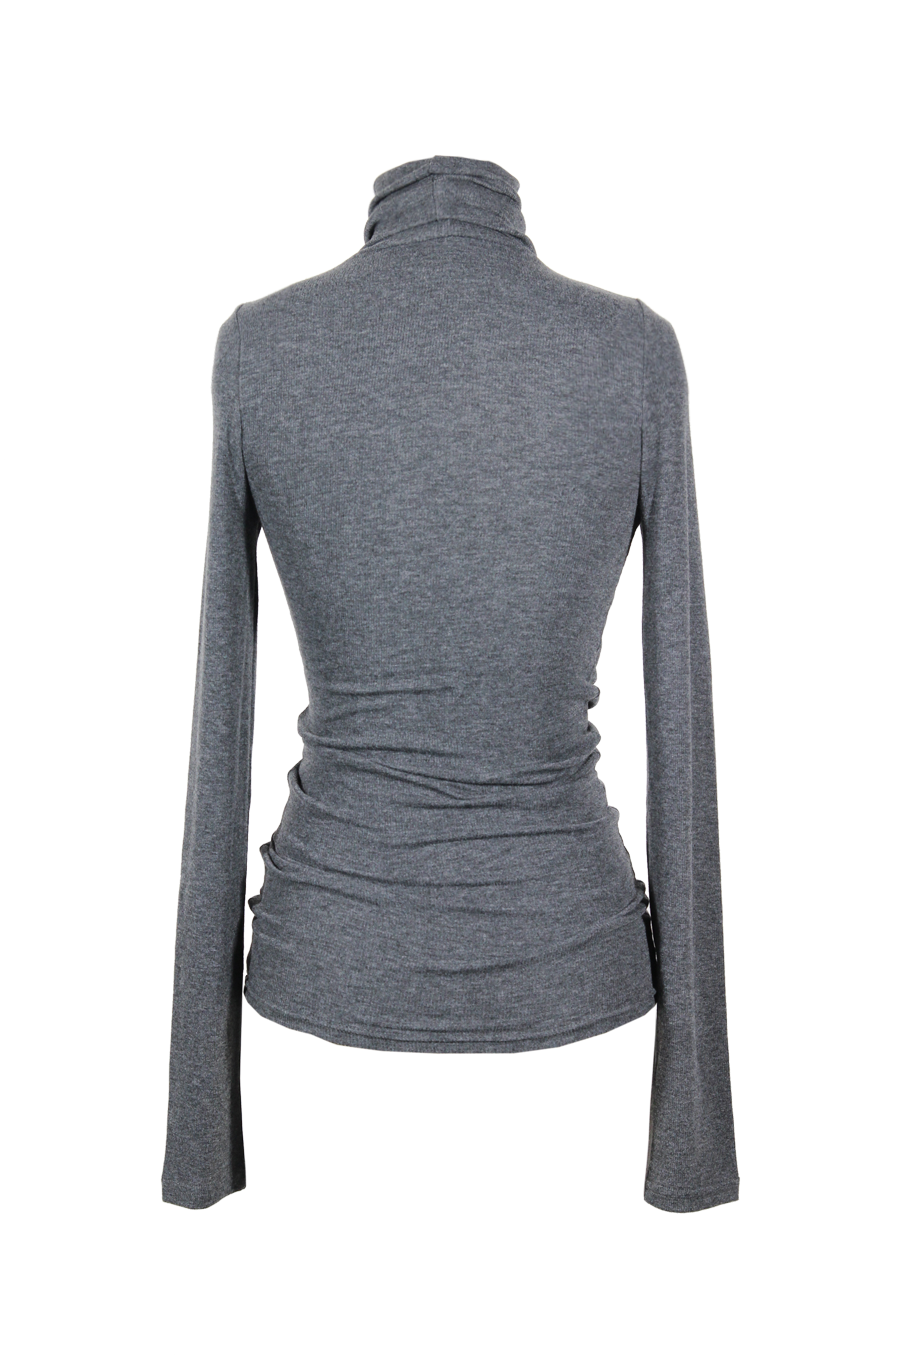 OLIVIA NZ Store online | Ribbed High Neck Top / Charcoal